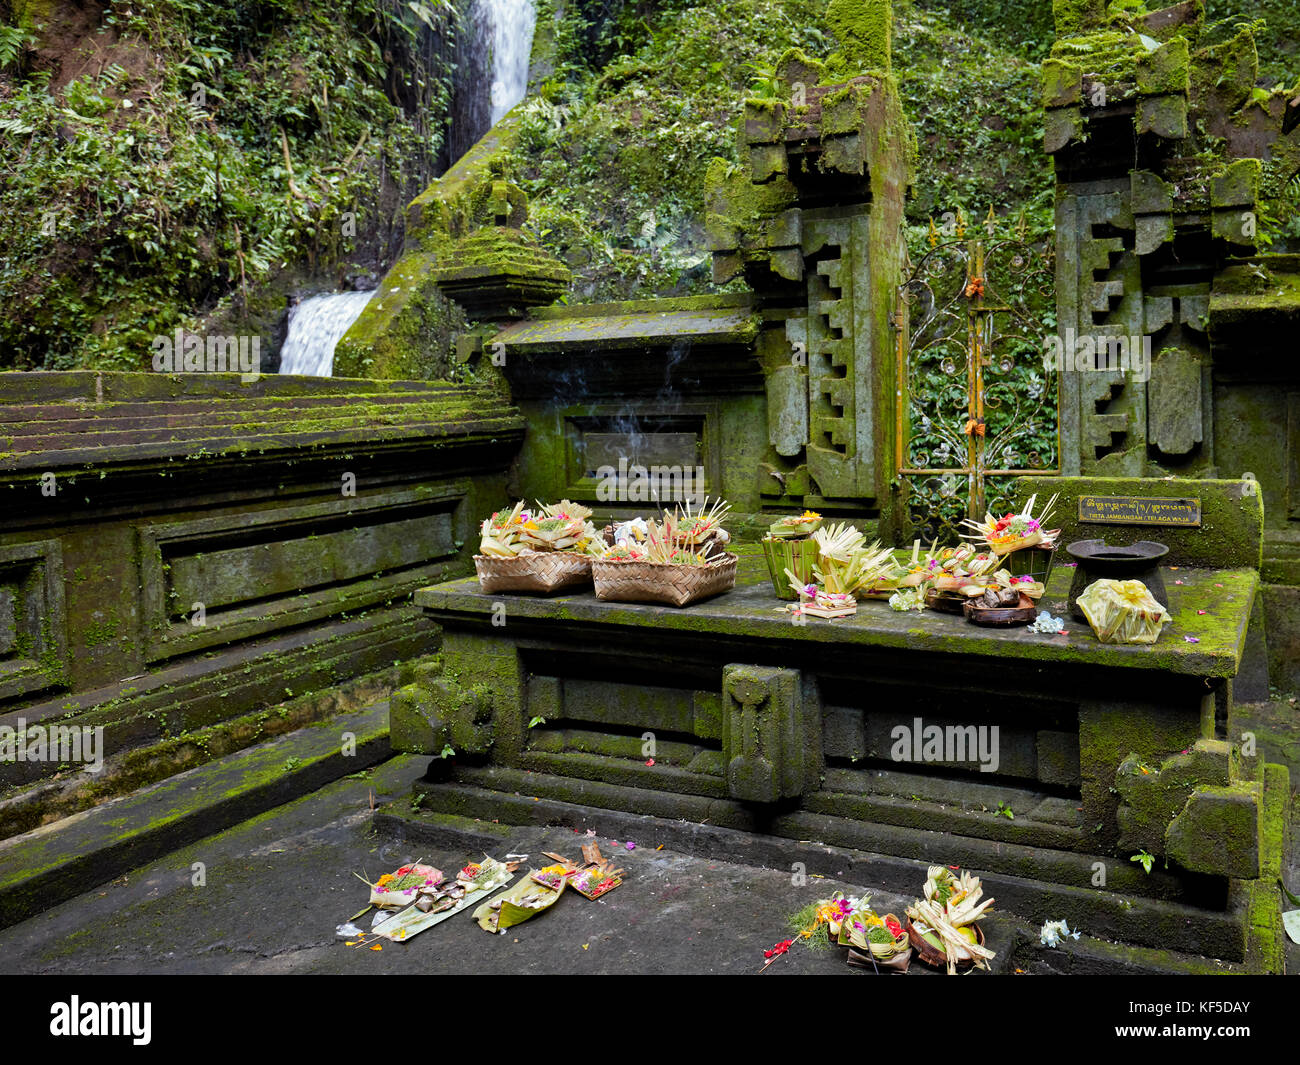 Altar with offerings in the Mengening Temple. Tampaksiring, Bali, Indonesia. - Stock Image